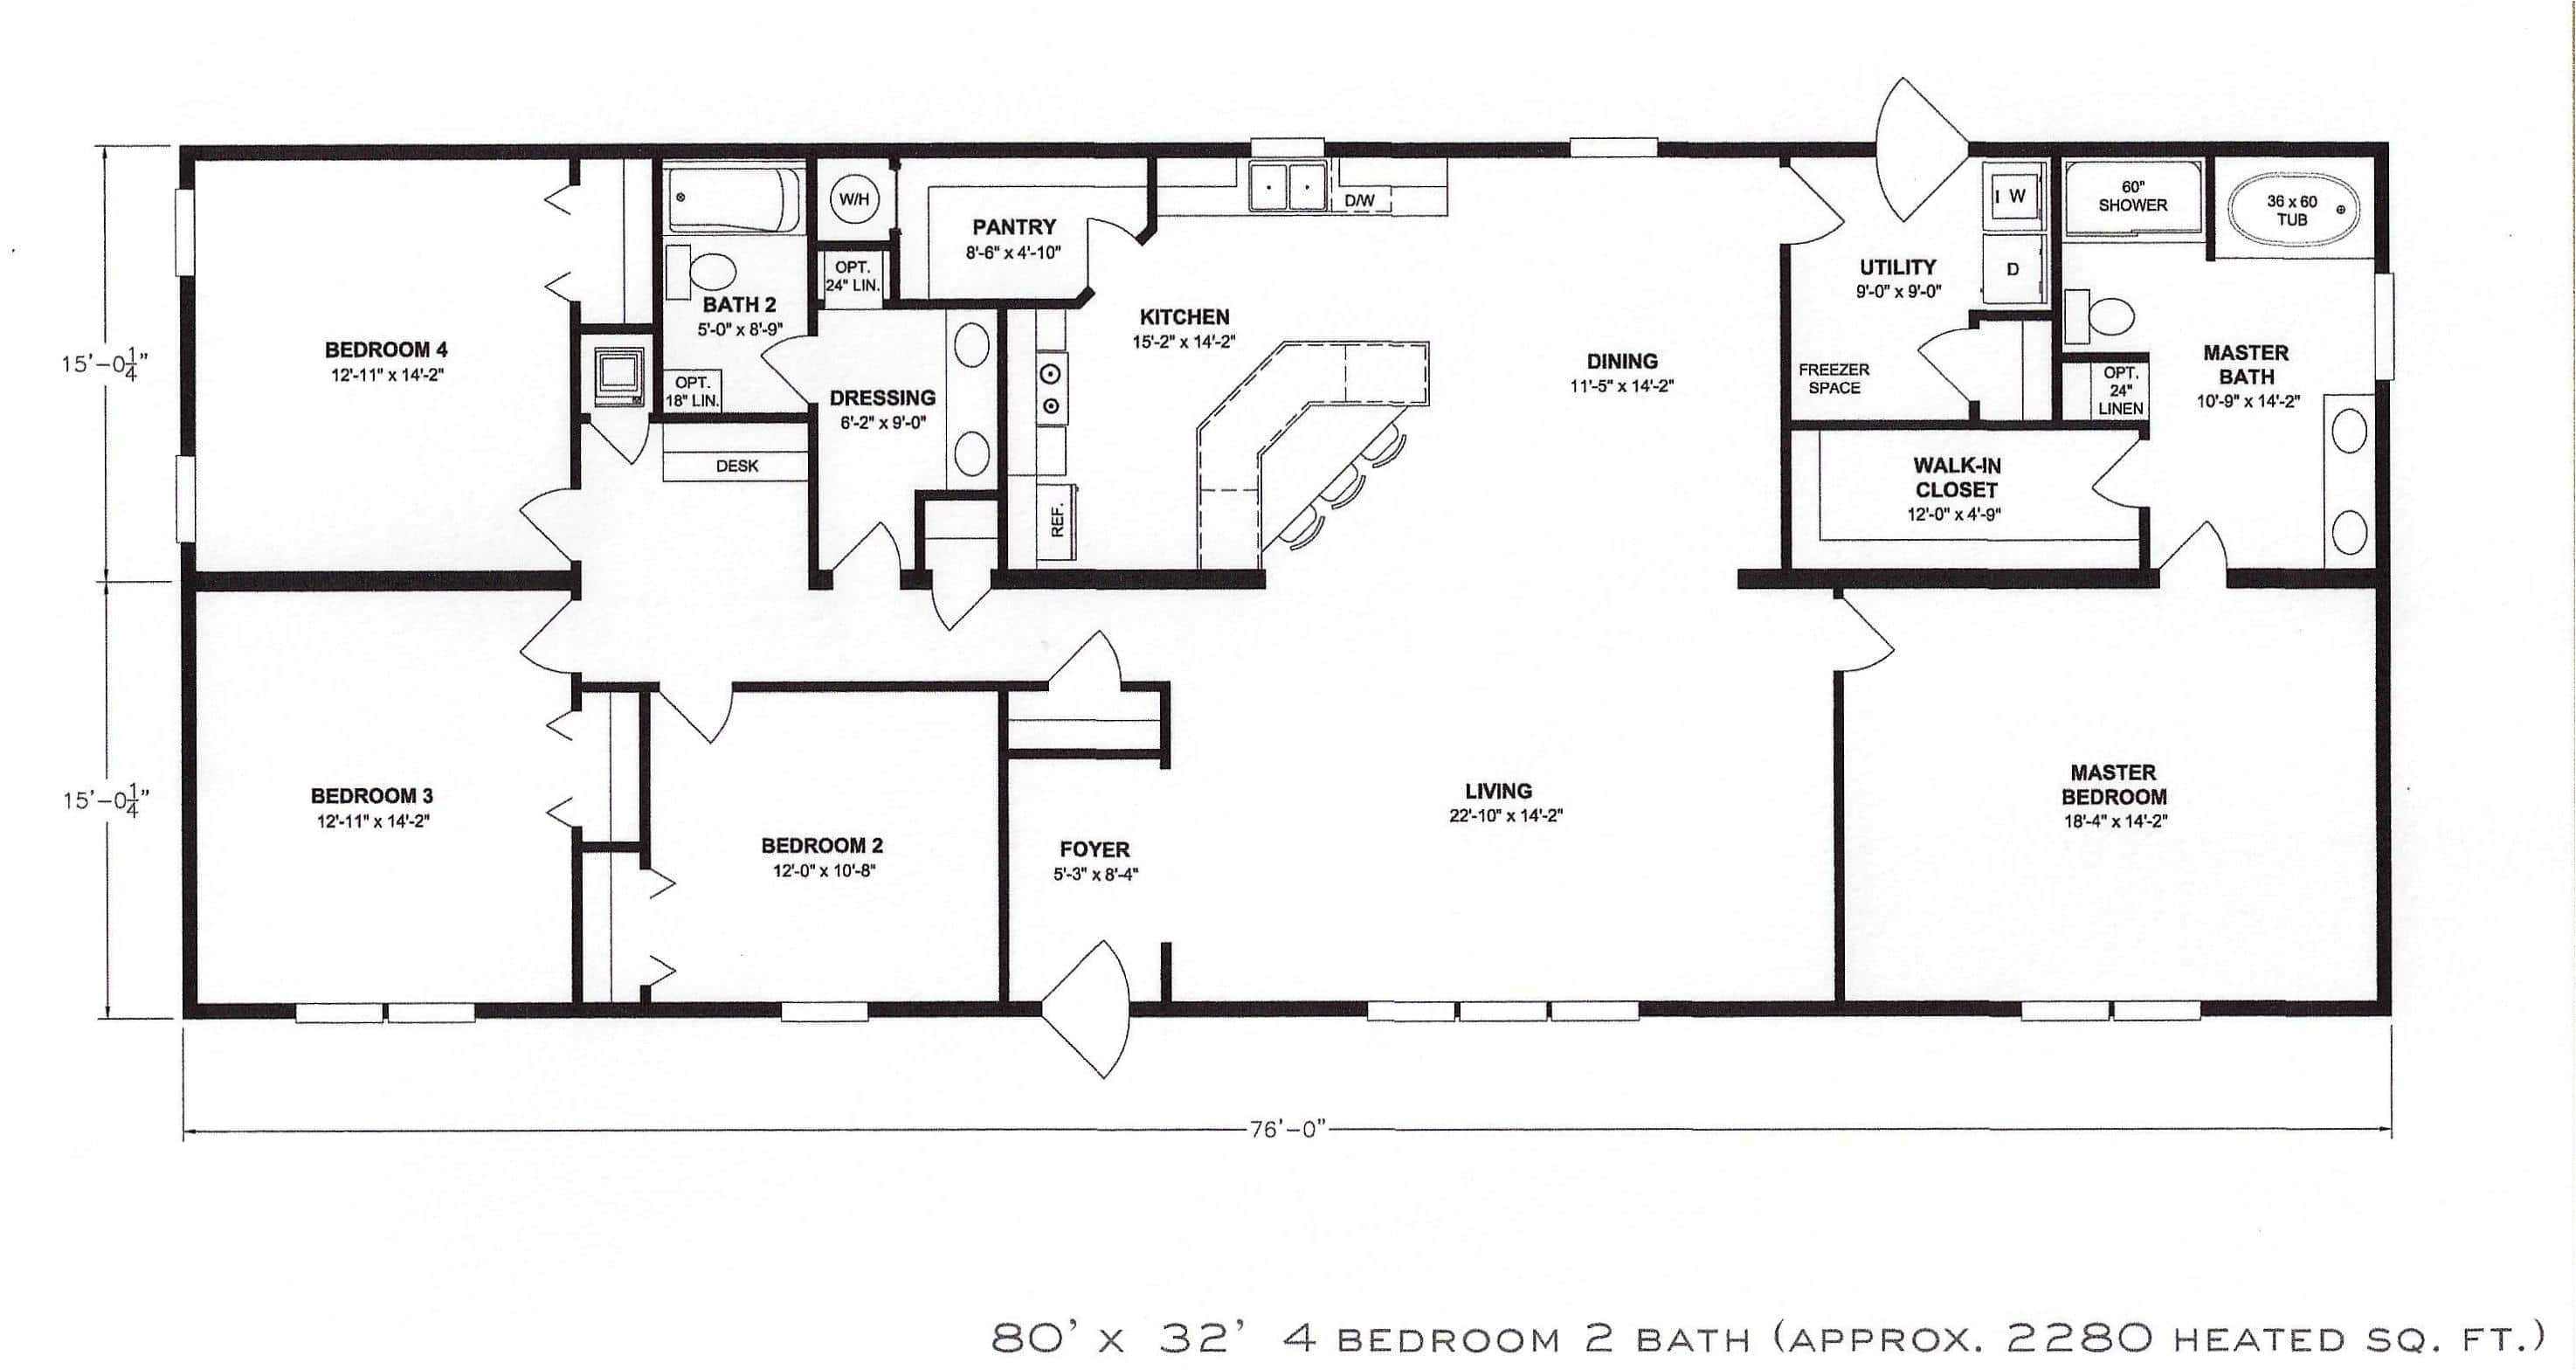 6 Bedroom Home Plans 6 Bedroom Ranch House Plans with 6 ...